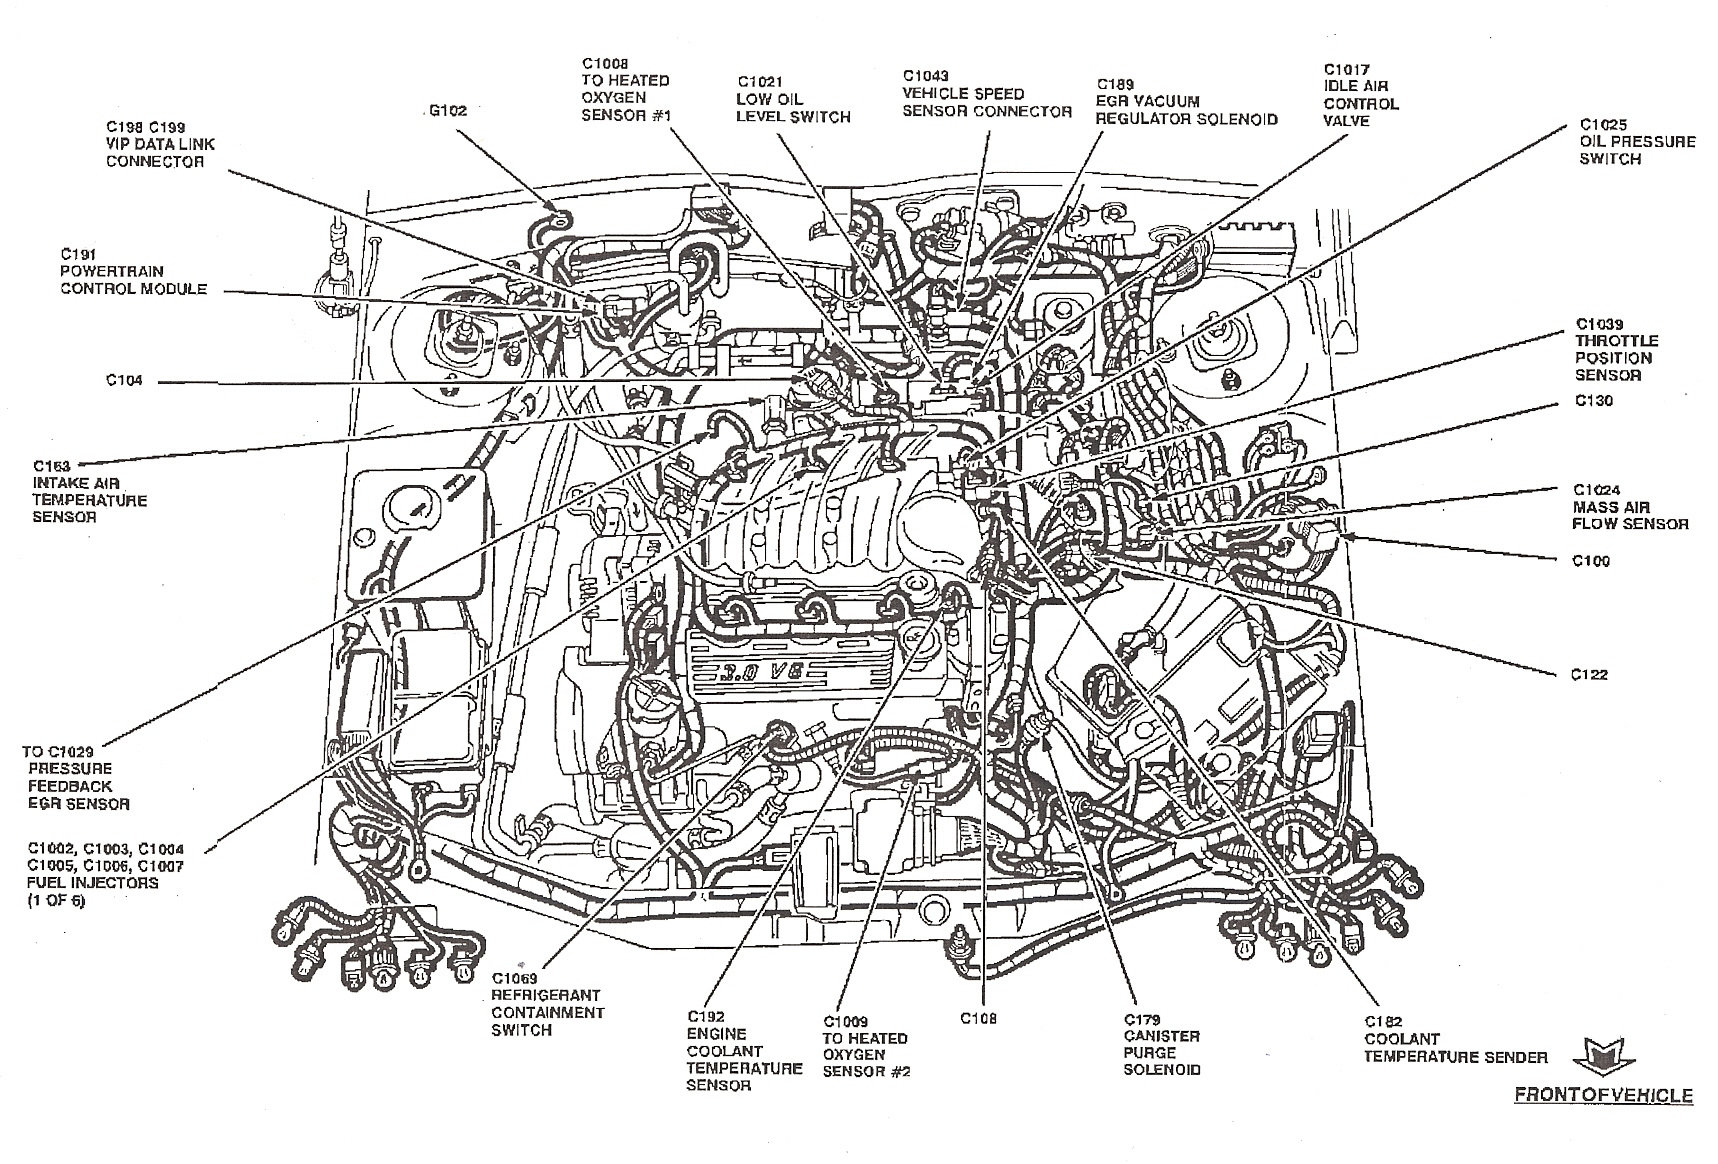 2001 Ford Taurus Motor Diagram Wiring Diagram System Mean Norm A Mean Norm A Ediliadesign It